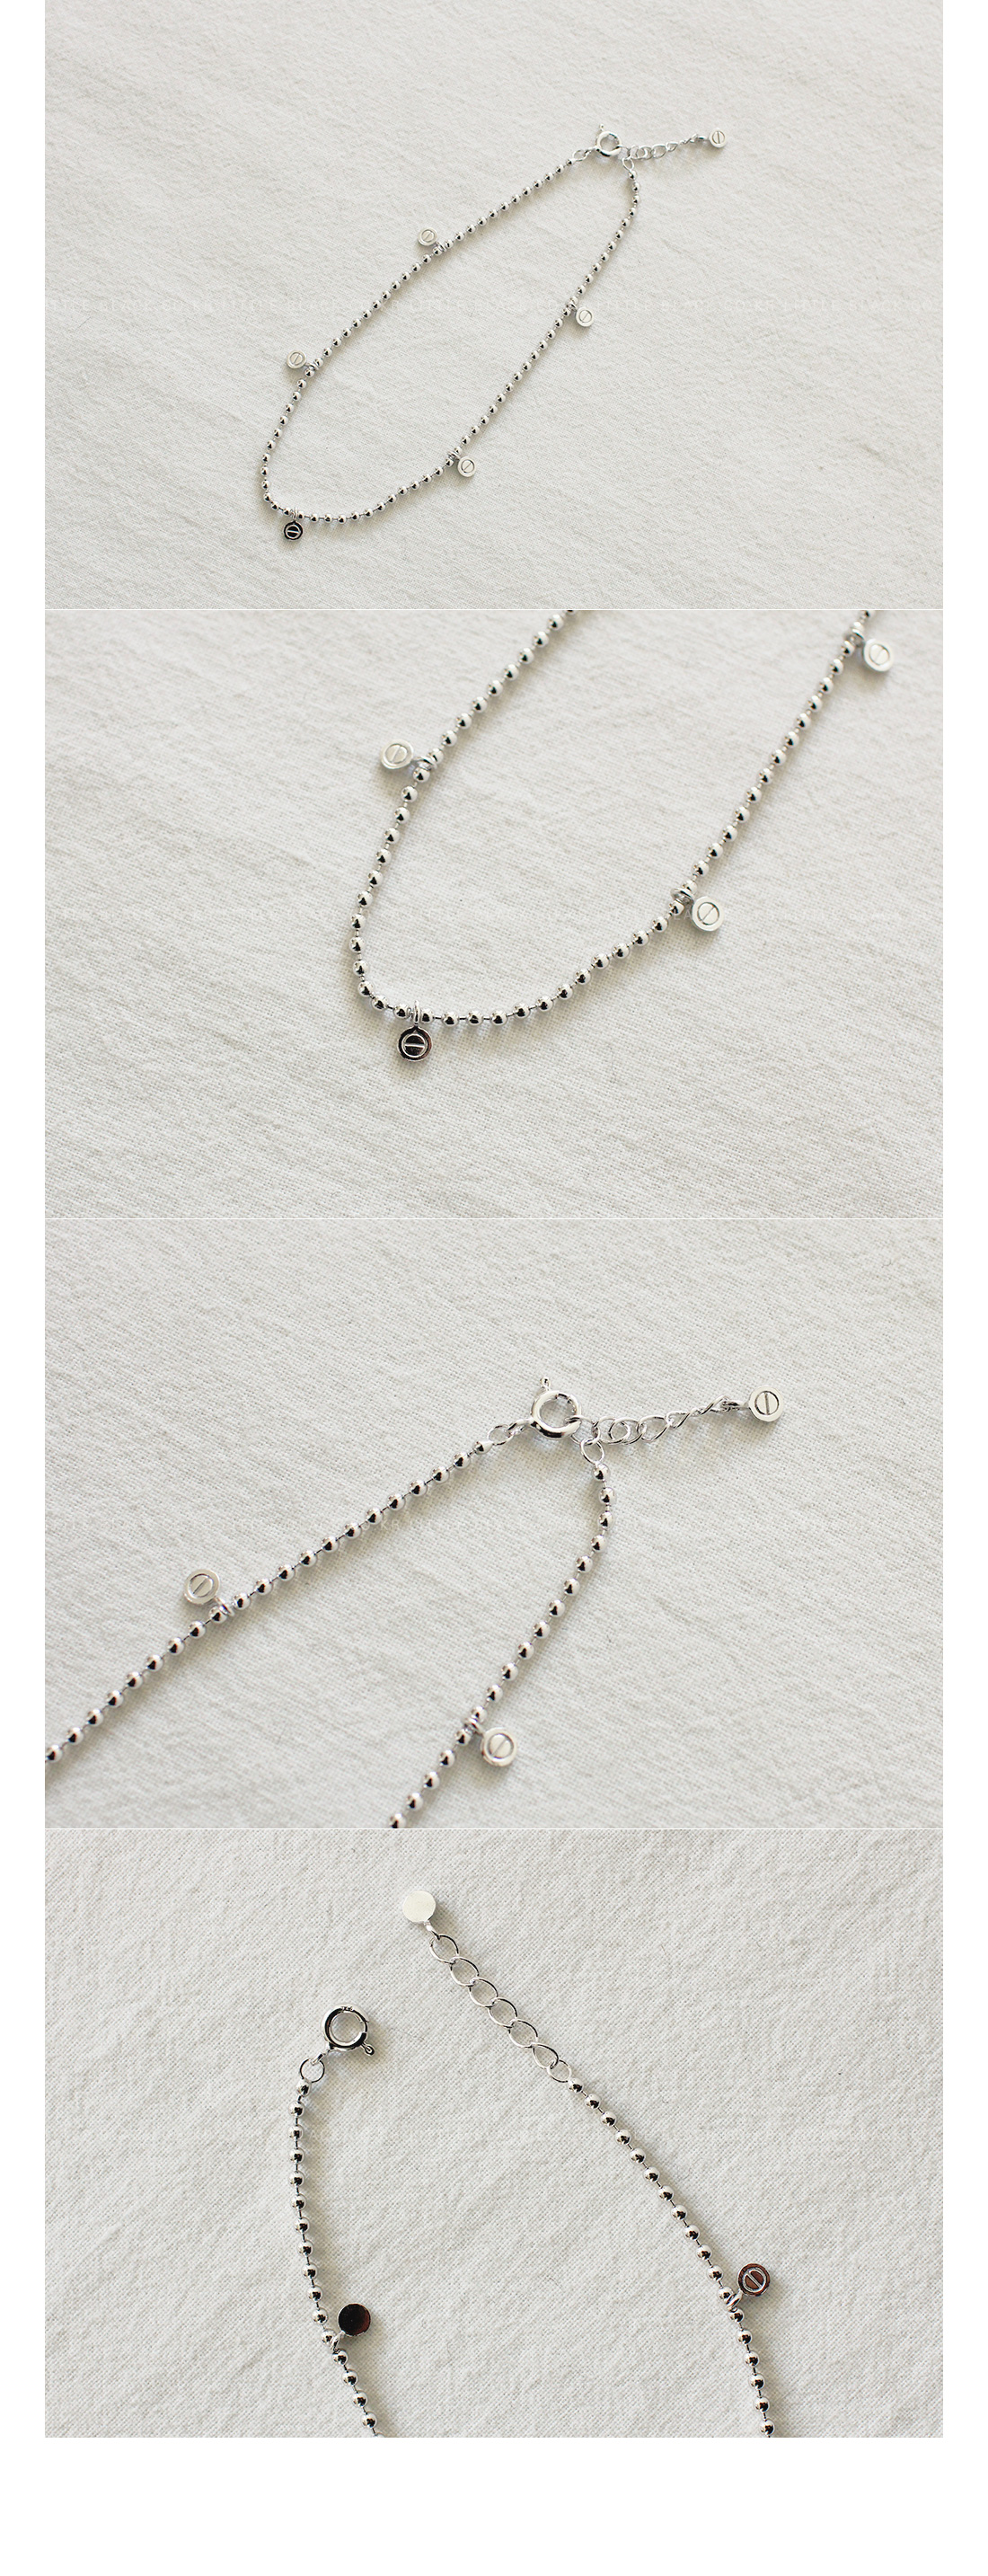 Bead Charm Anklet|